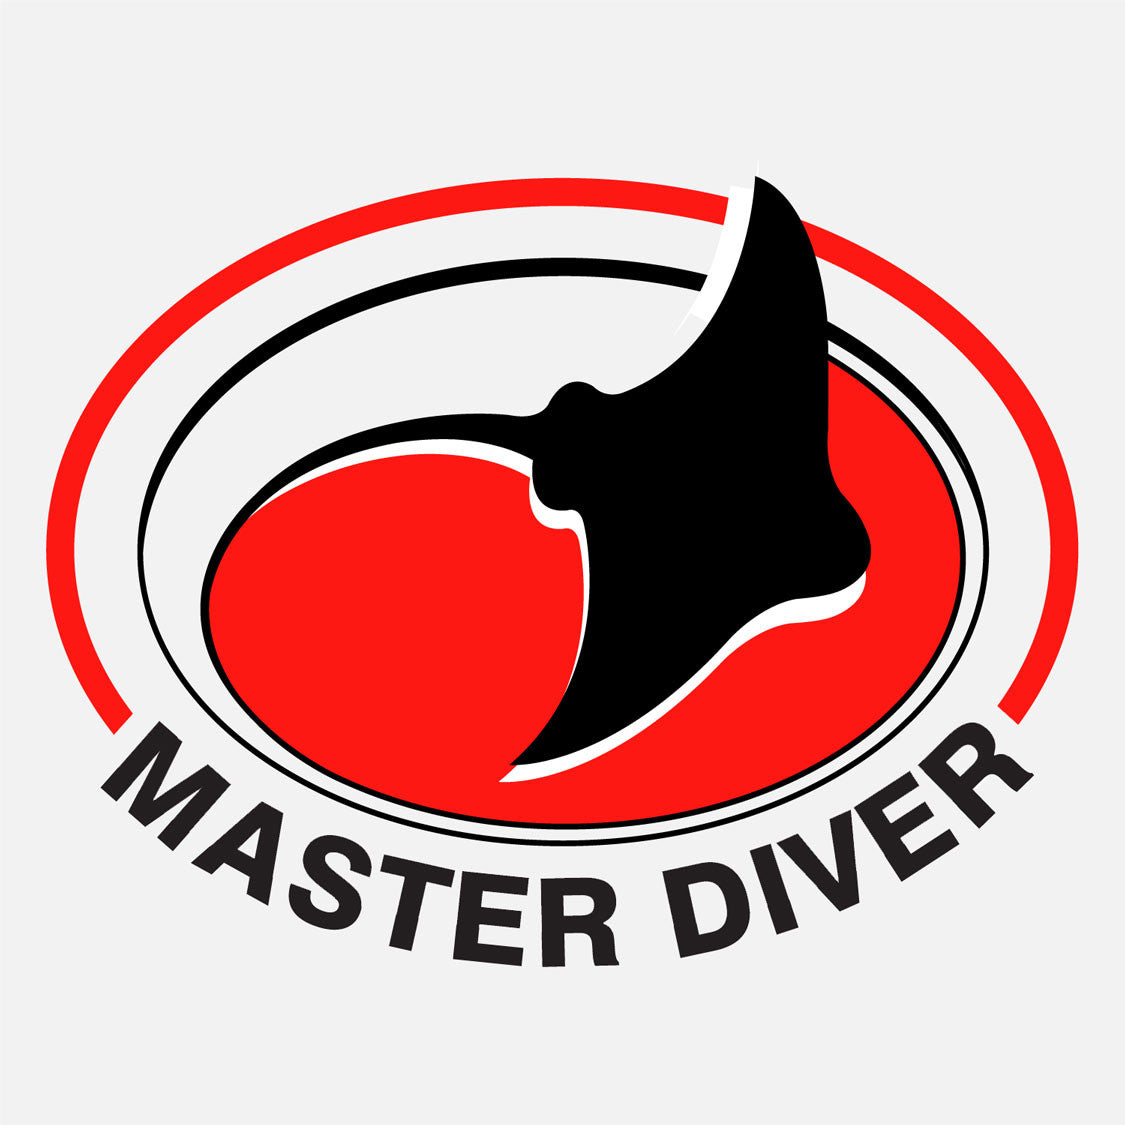 Master diver logo for Water Safety Products, Inc., Indian Harbor Beach, Florida. The logo is a graphic of a stingray in an oval.